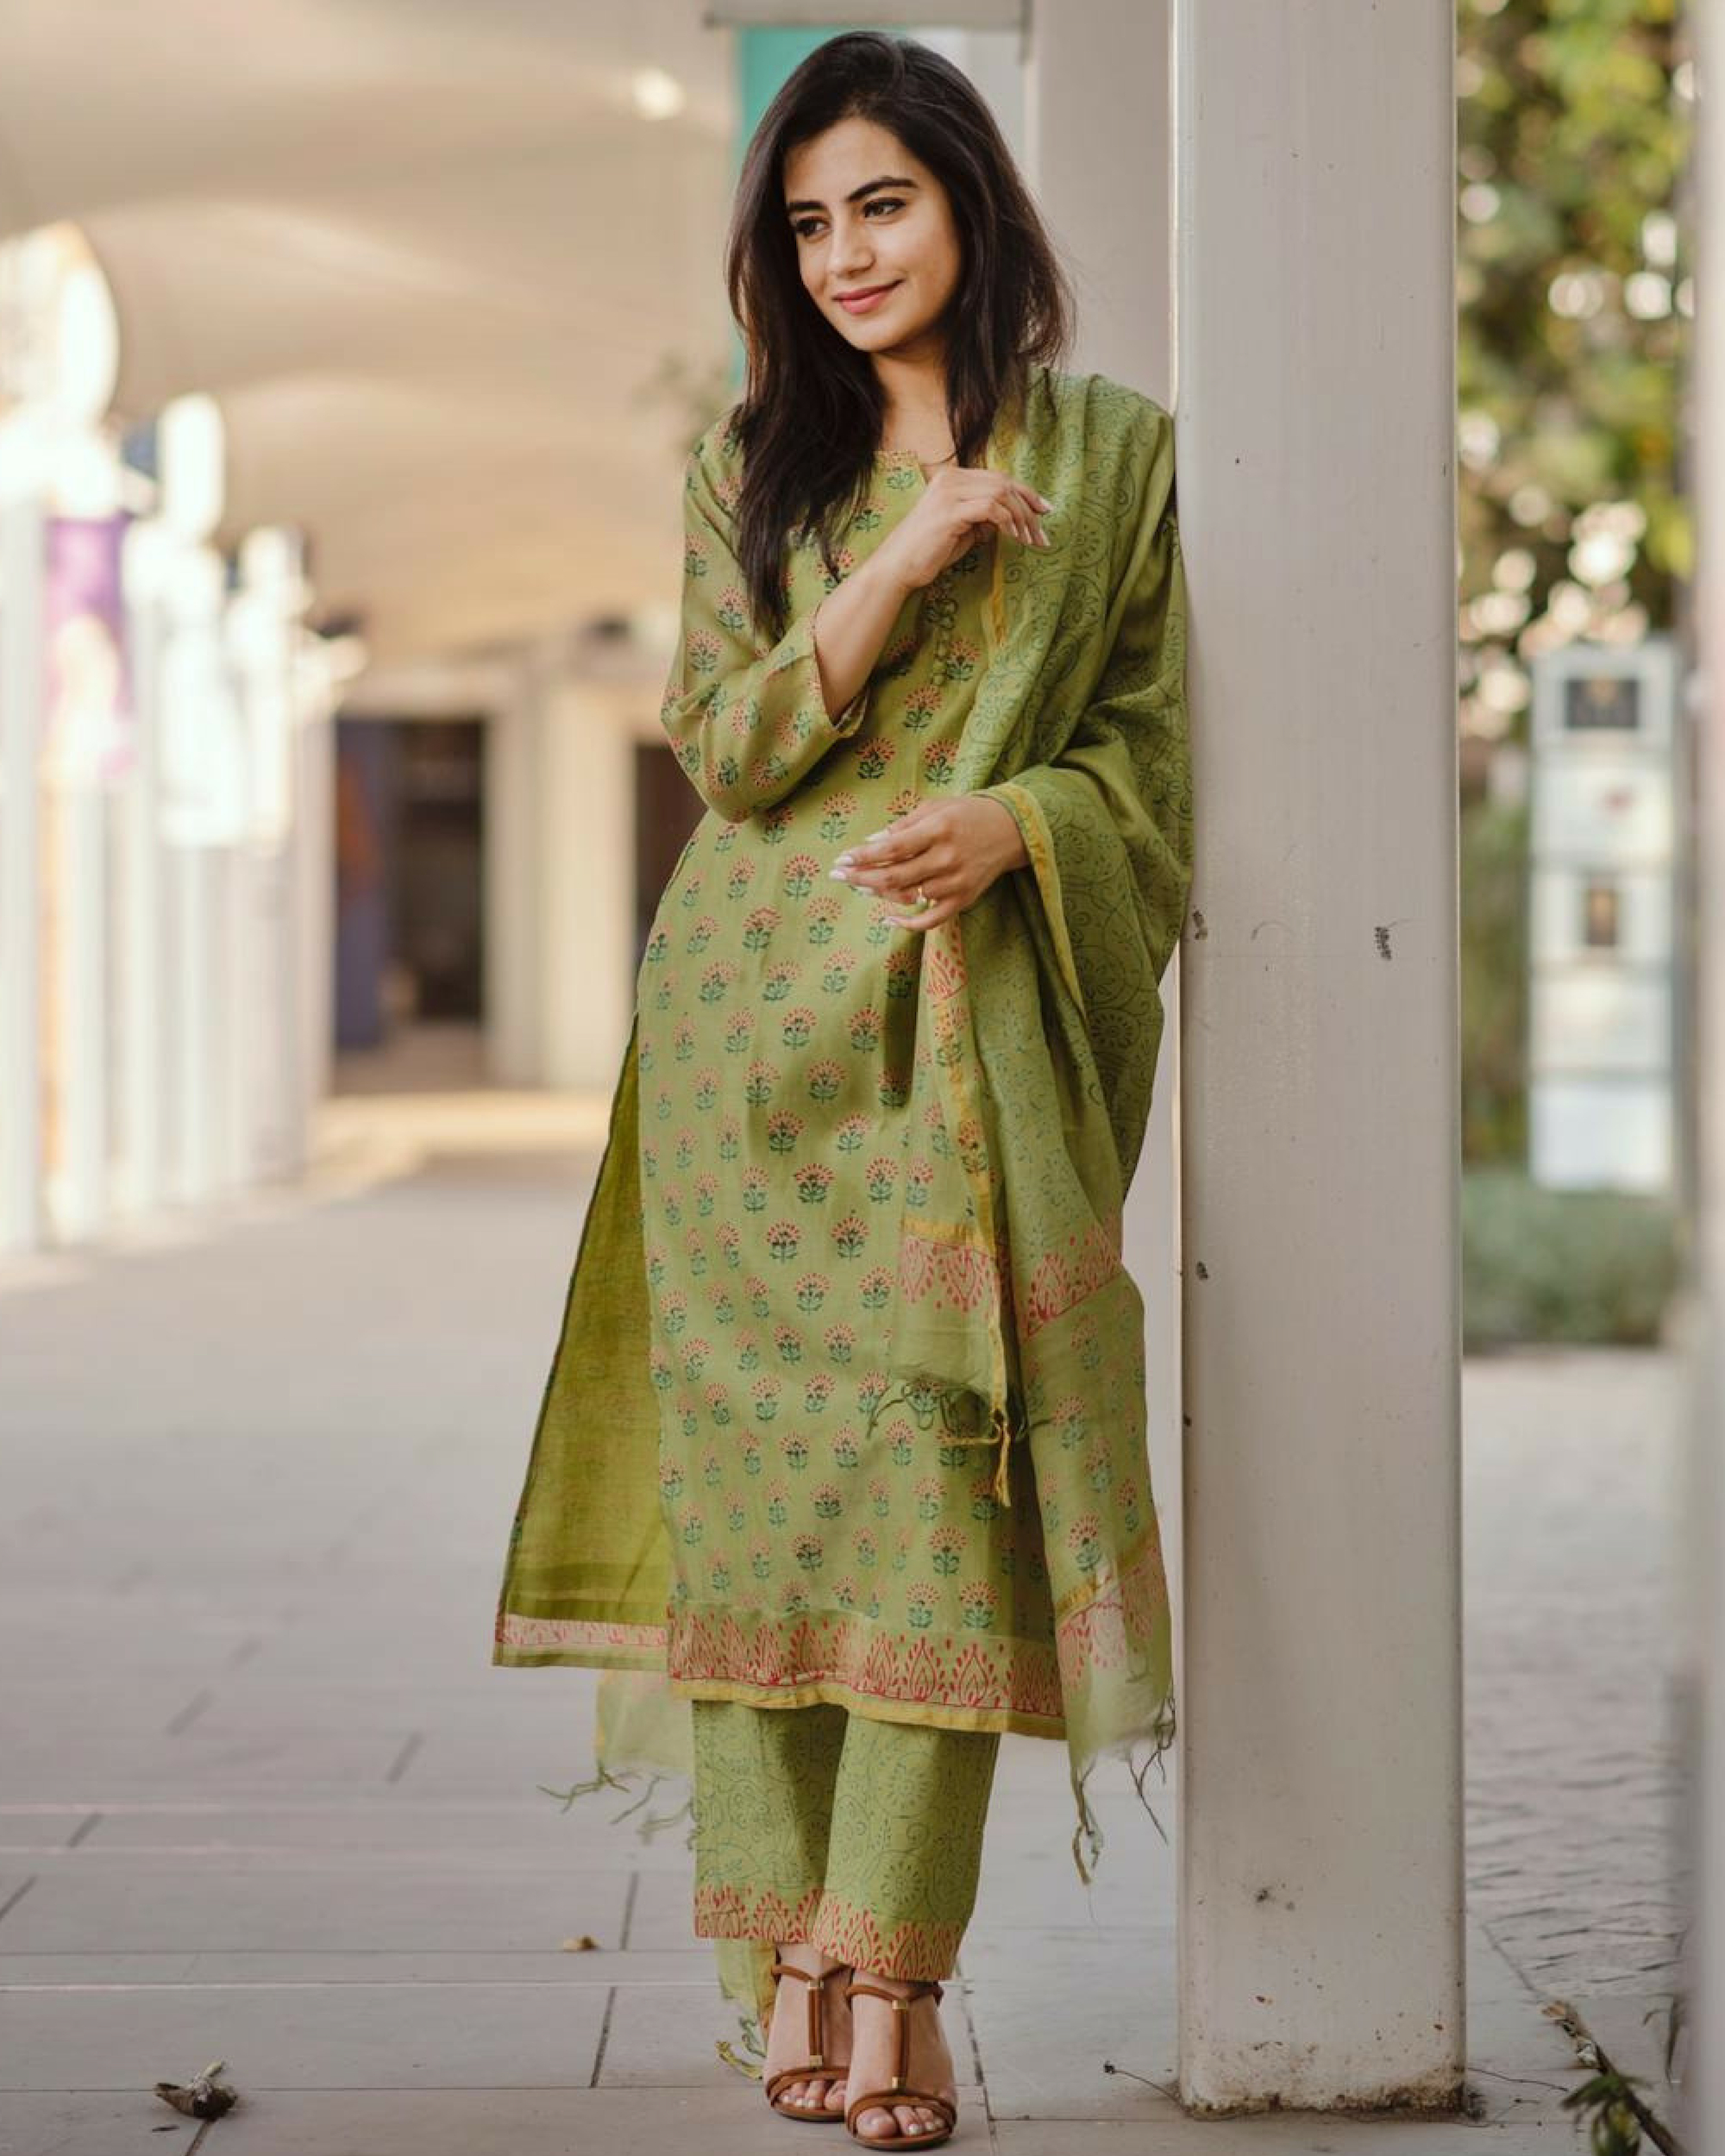 Pistachio green kurta with straight pants and dupatta